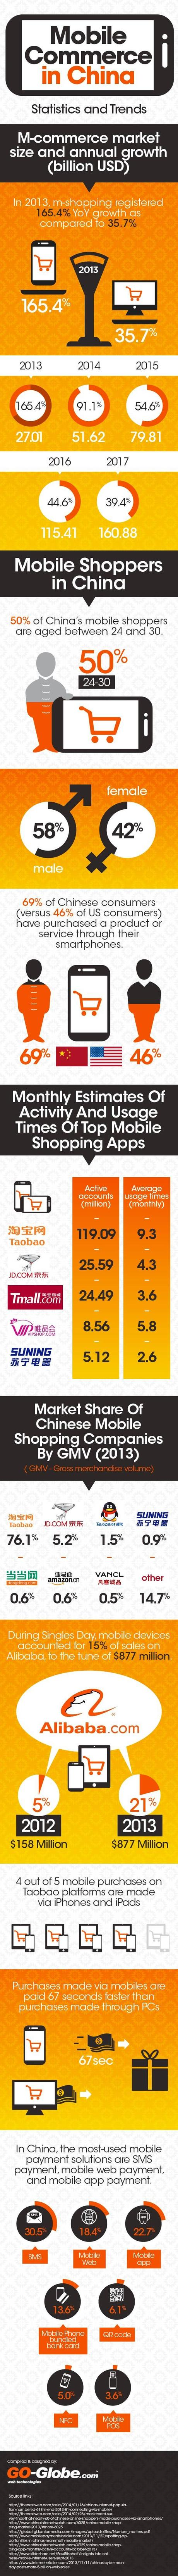 Mobile Commerce in China - Statistics and Trends